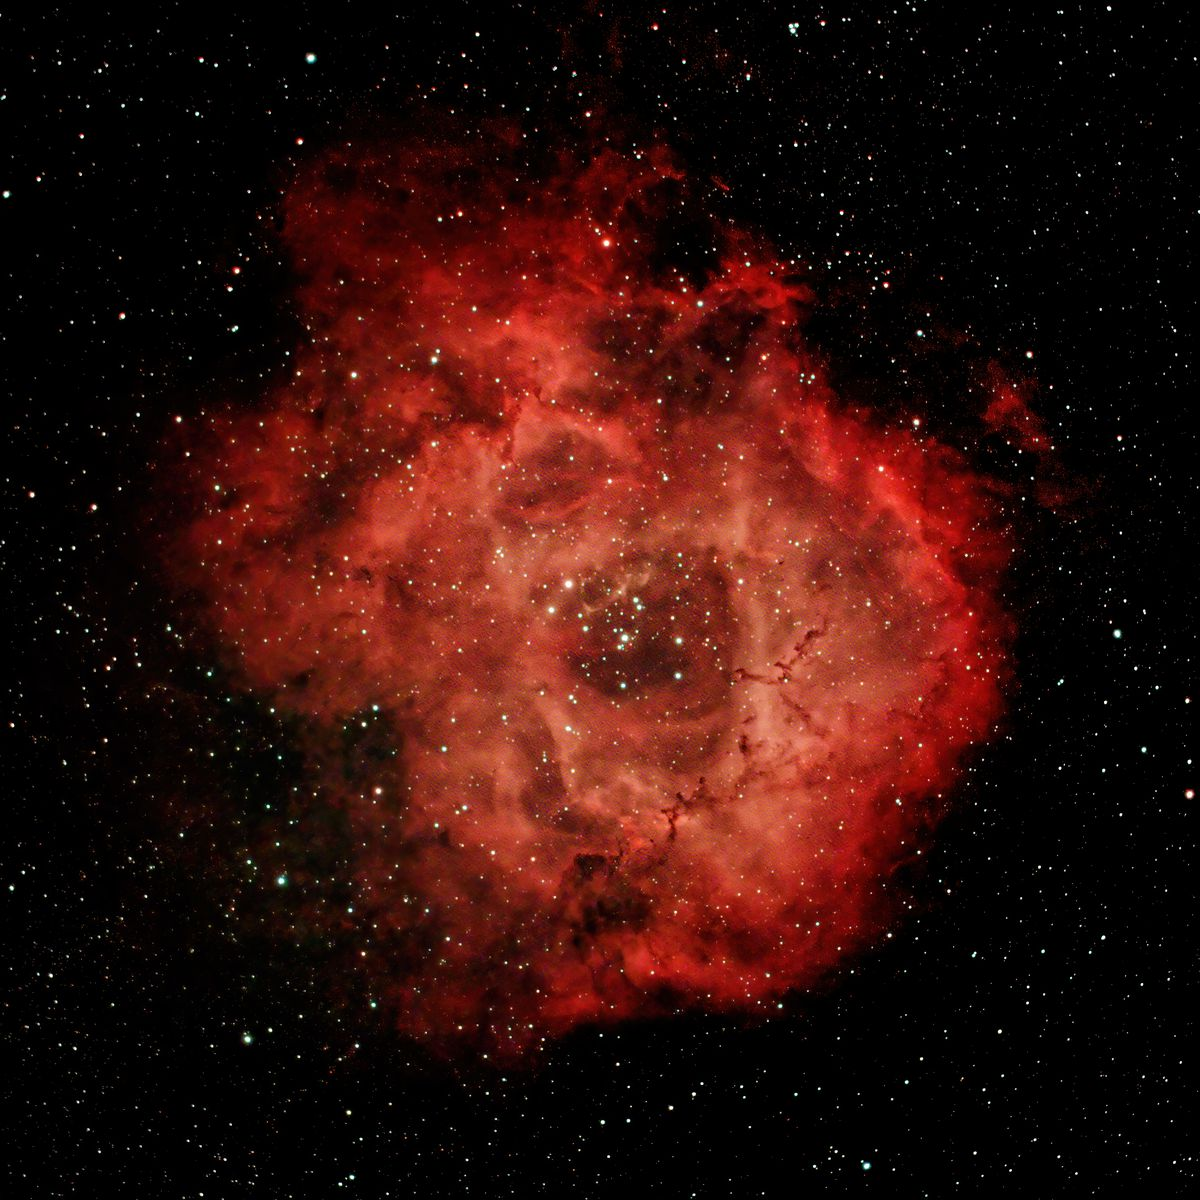 Image of the Rosette Nebula, captured by Gian Lorenzo Ferretti in University Village and posted on his Instagram on March 3.